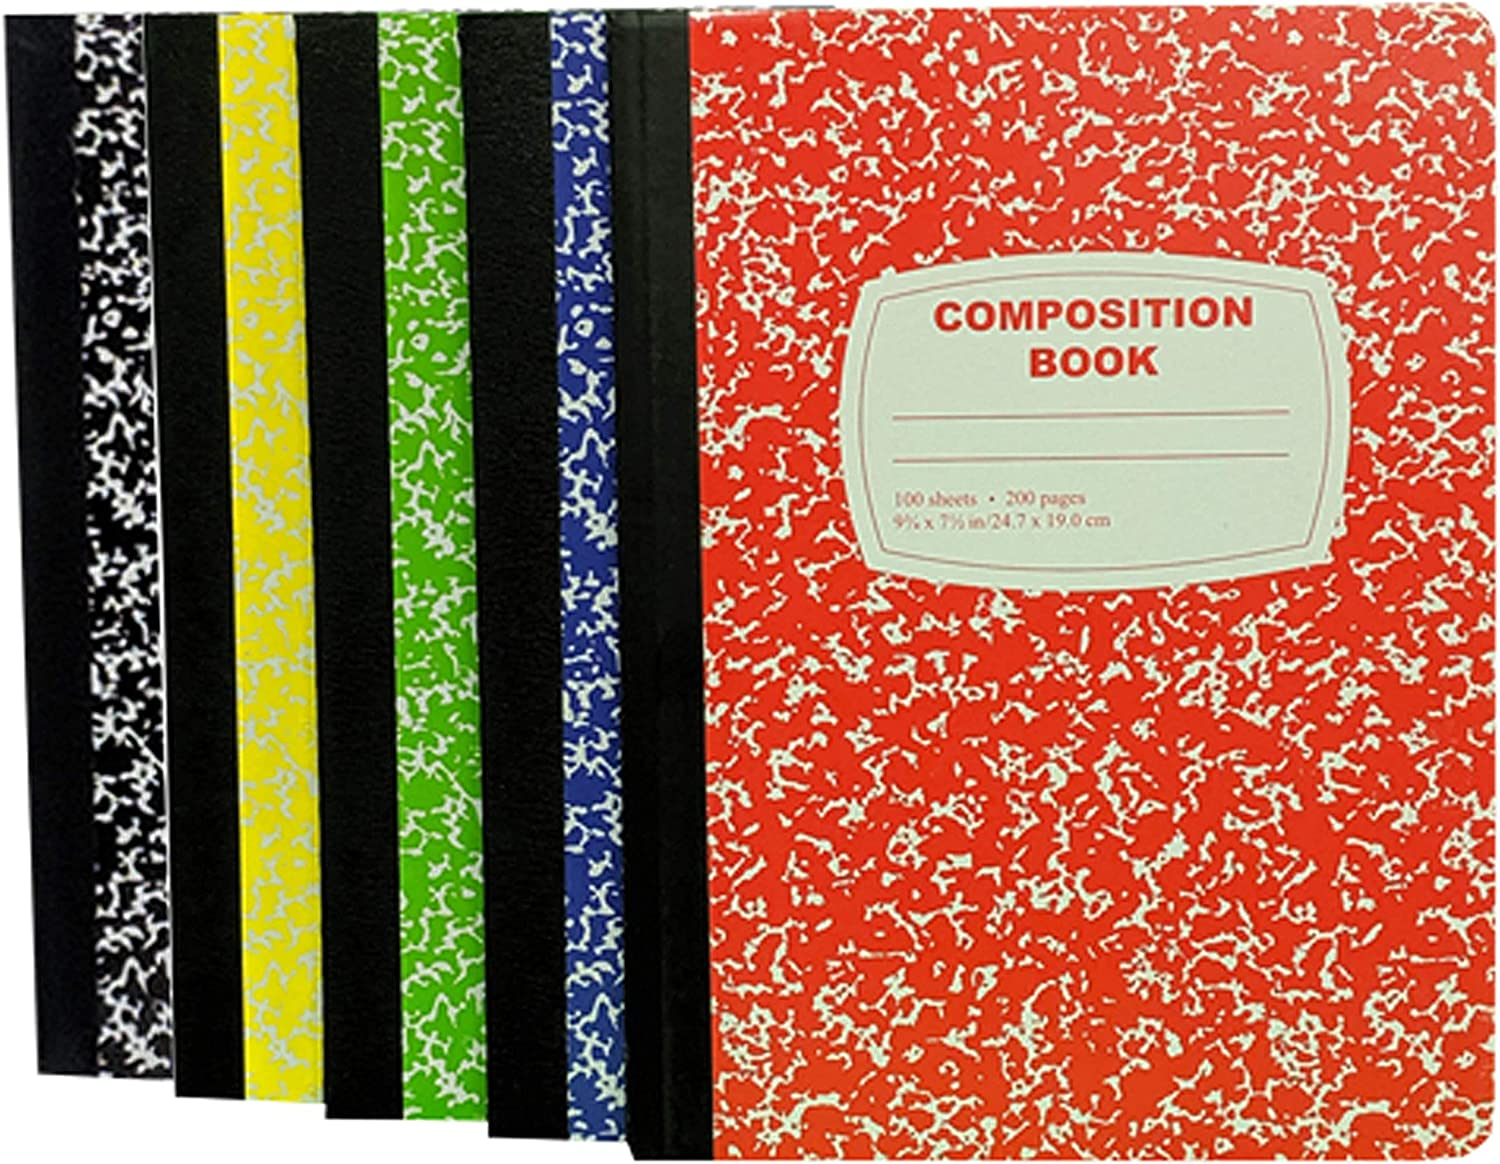 100 Sheet Composition Notebooks - School Supplies Bundle - 5 College Ruled Composition Notebooks - 1 Black, 1 Red, 1 Green, 1 Blue, and 1 Yellow (College Ruled) 91phiyTPHkL